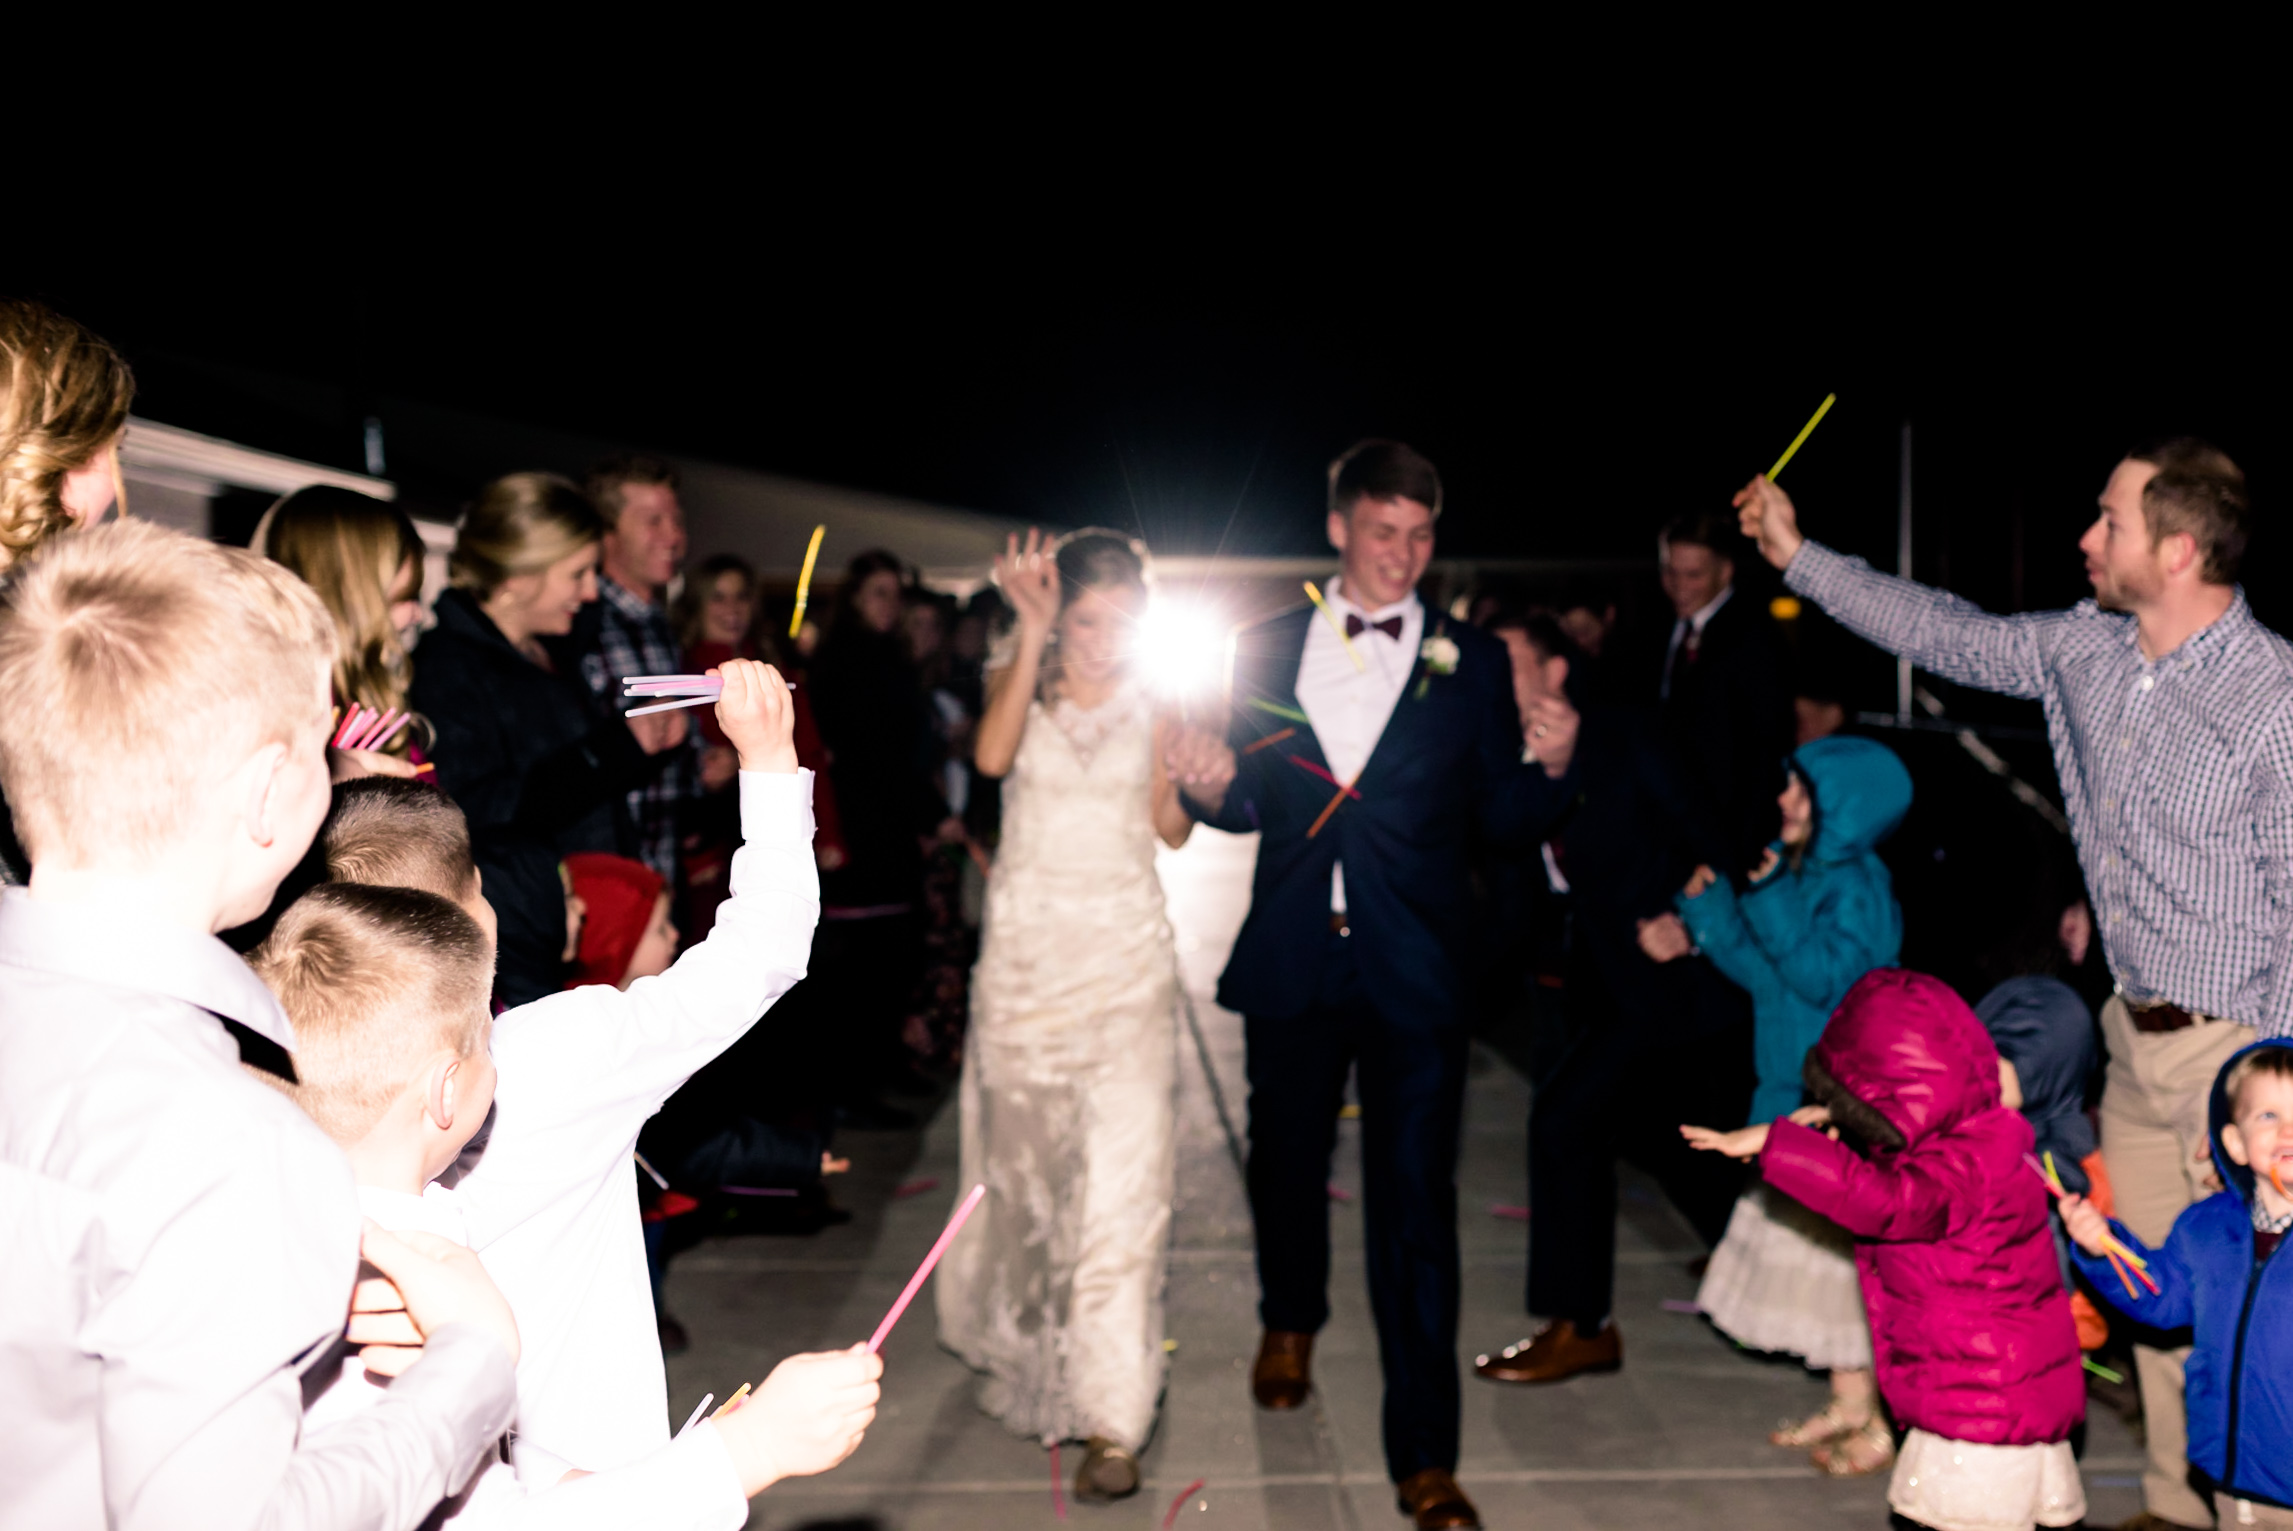 glow stick exit, wedding, night